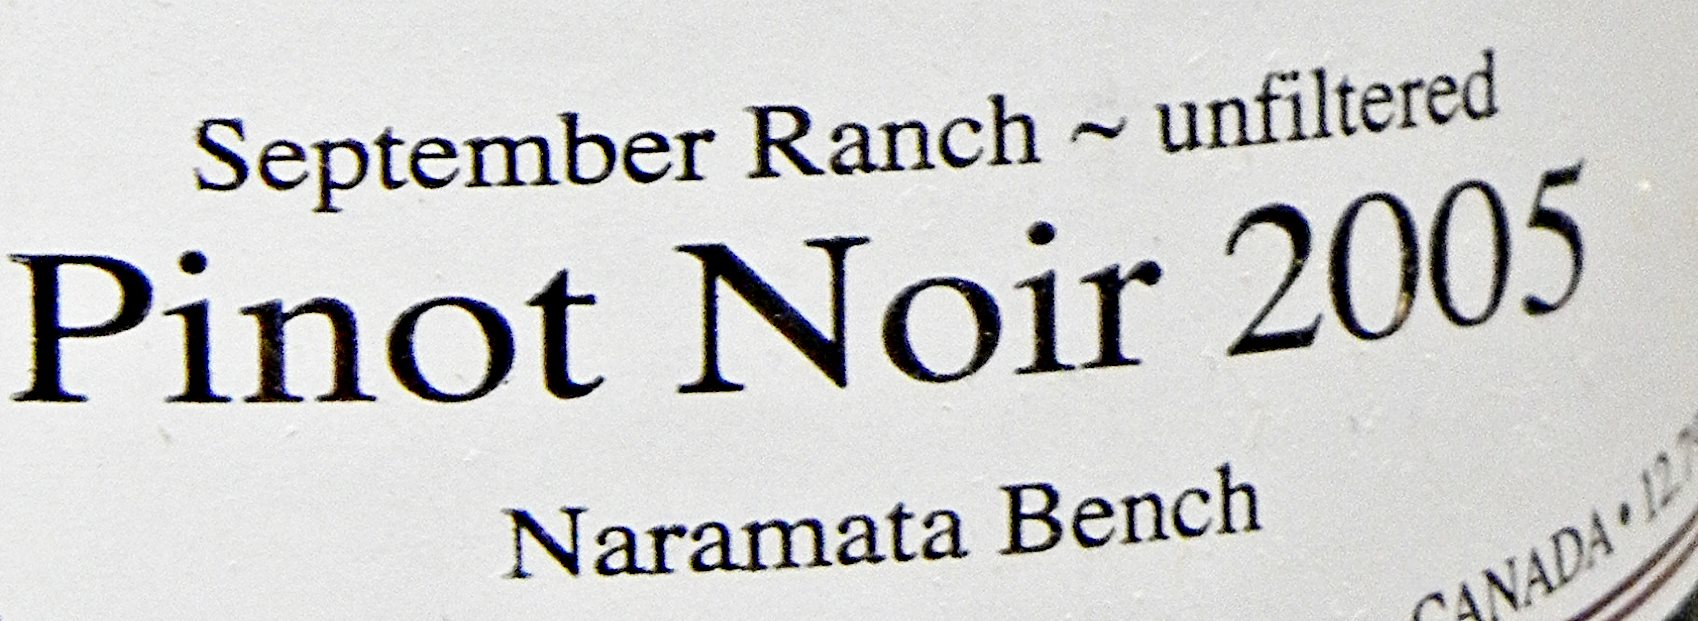 Nichol Vineyard 2005 Label Detail BC Pinot Noir Tasting Review 3